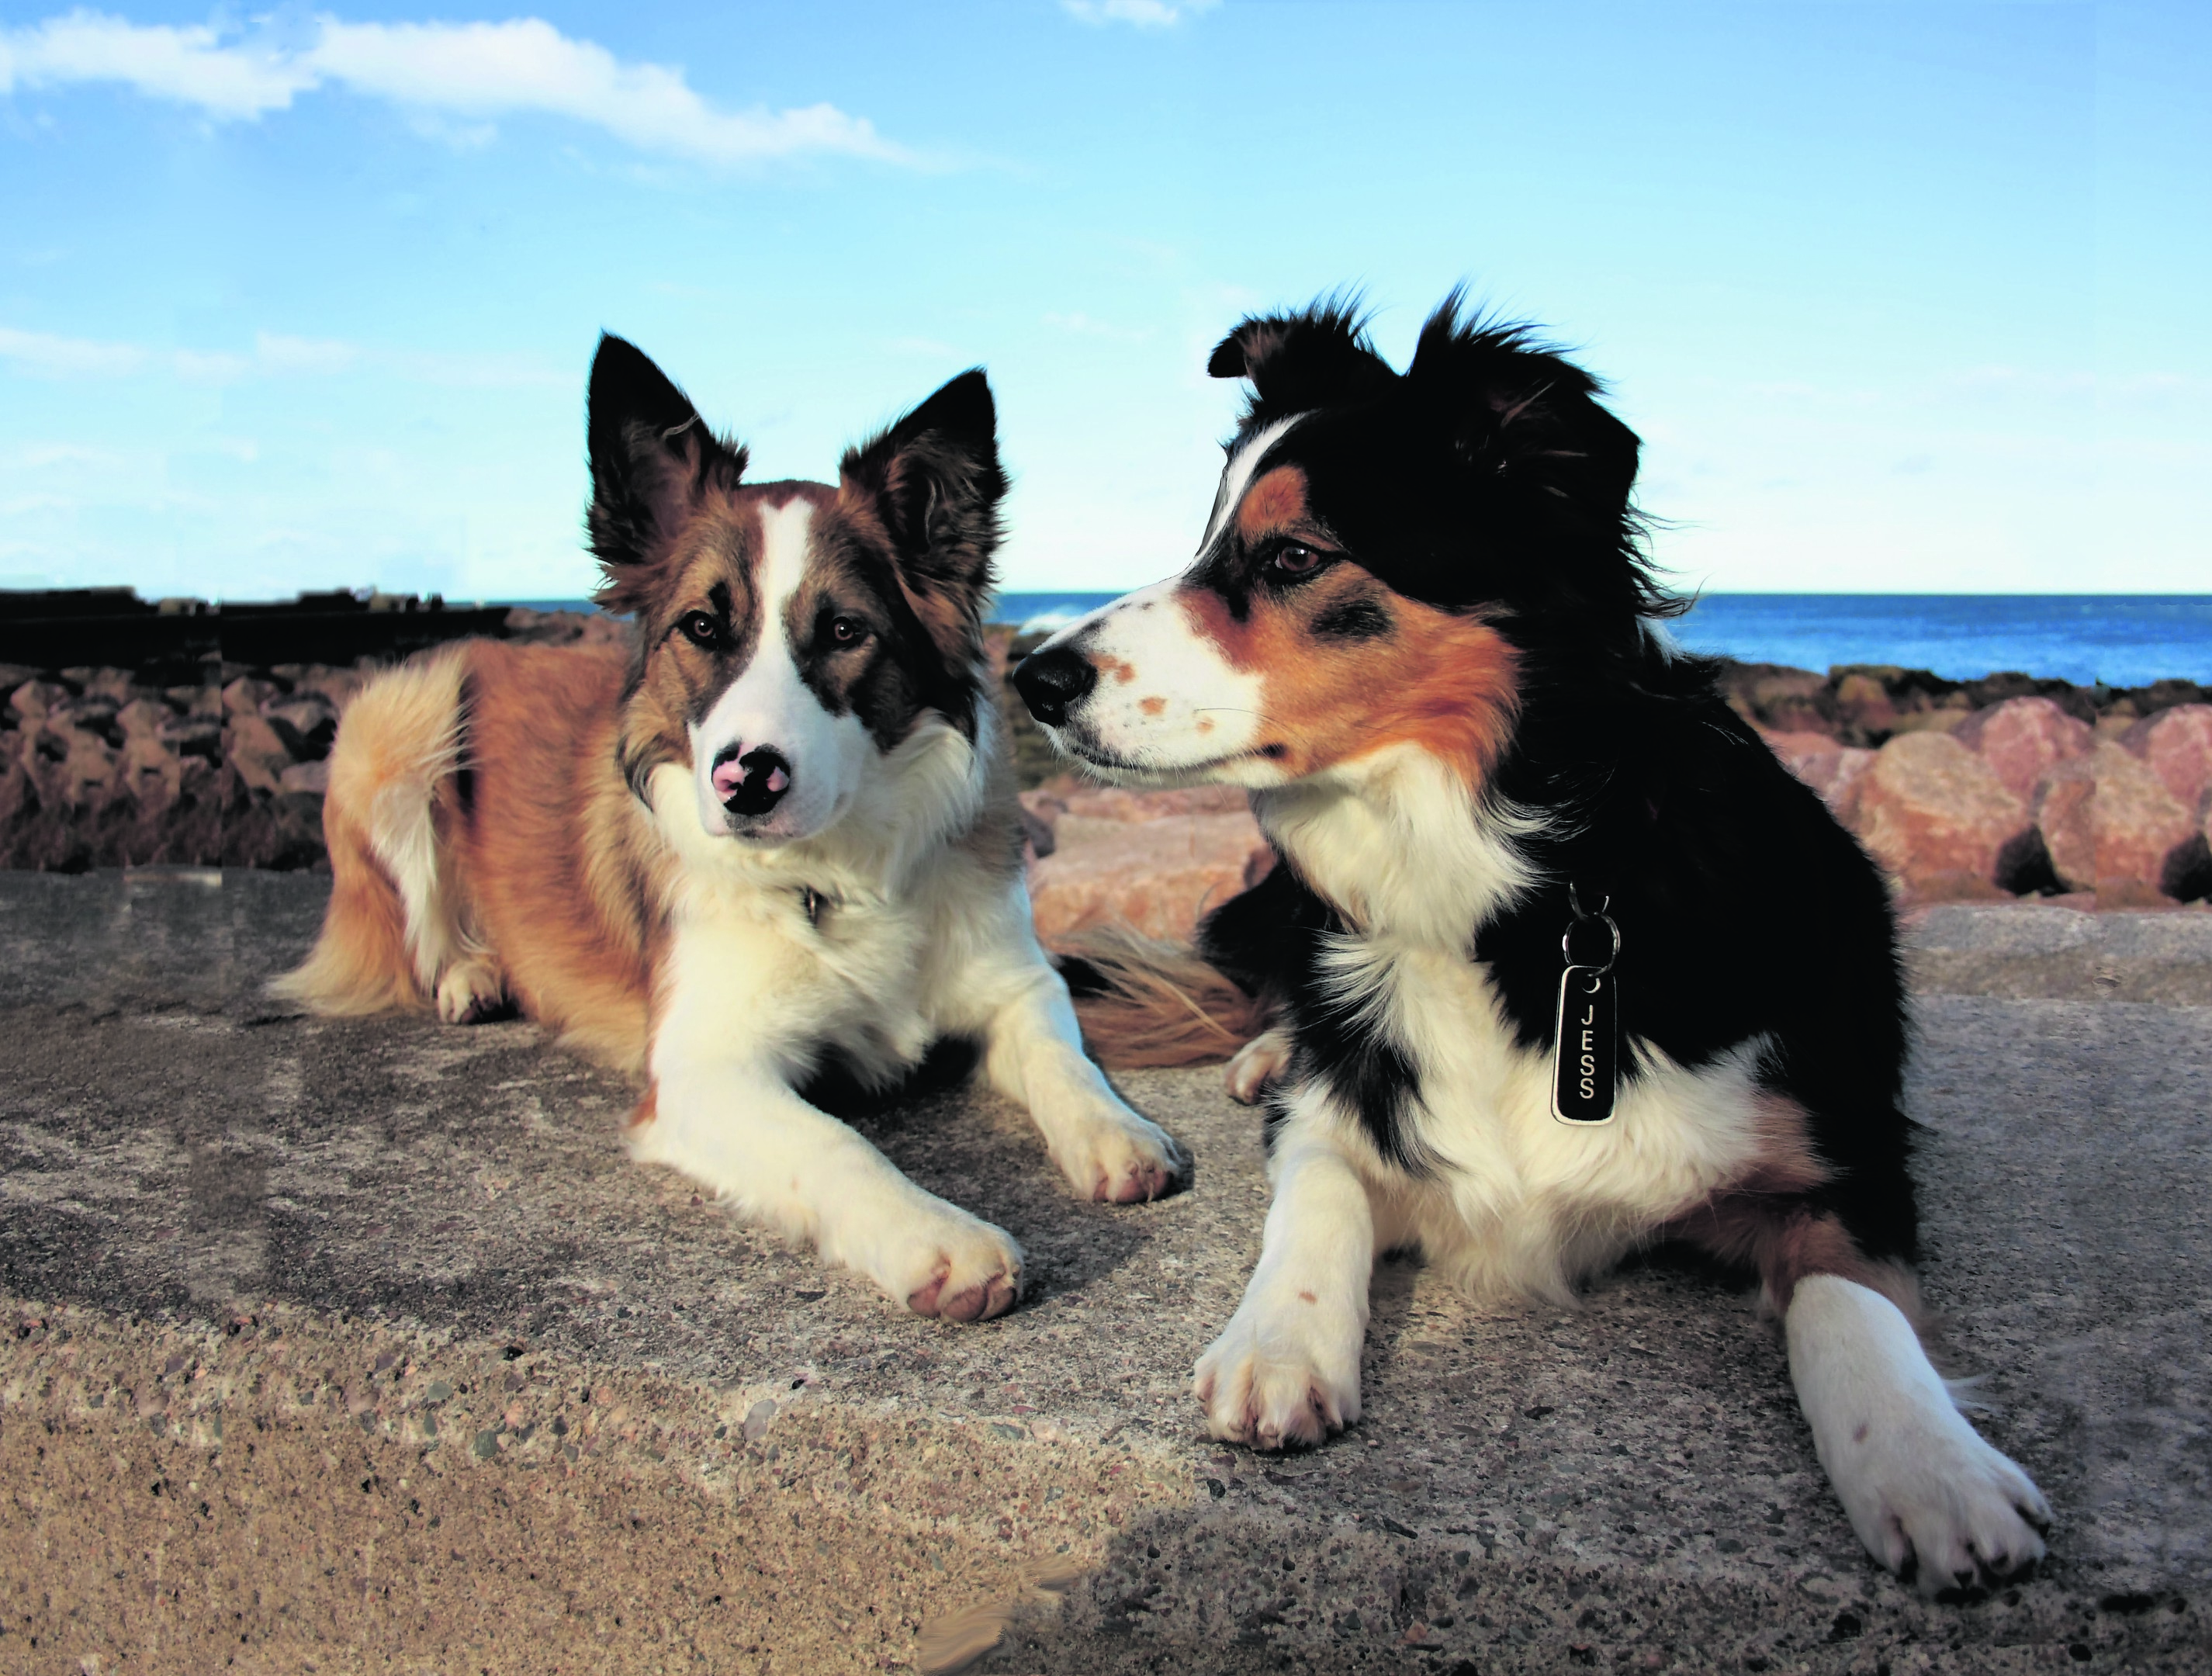 Border collies Bracken and Jess enjoying the spring sunshine at Roanheads, Peterhead. They live with the McDonald family. They are our canvas winners this week.